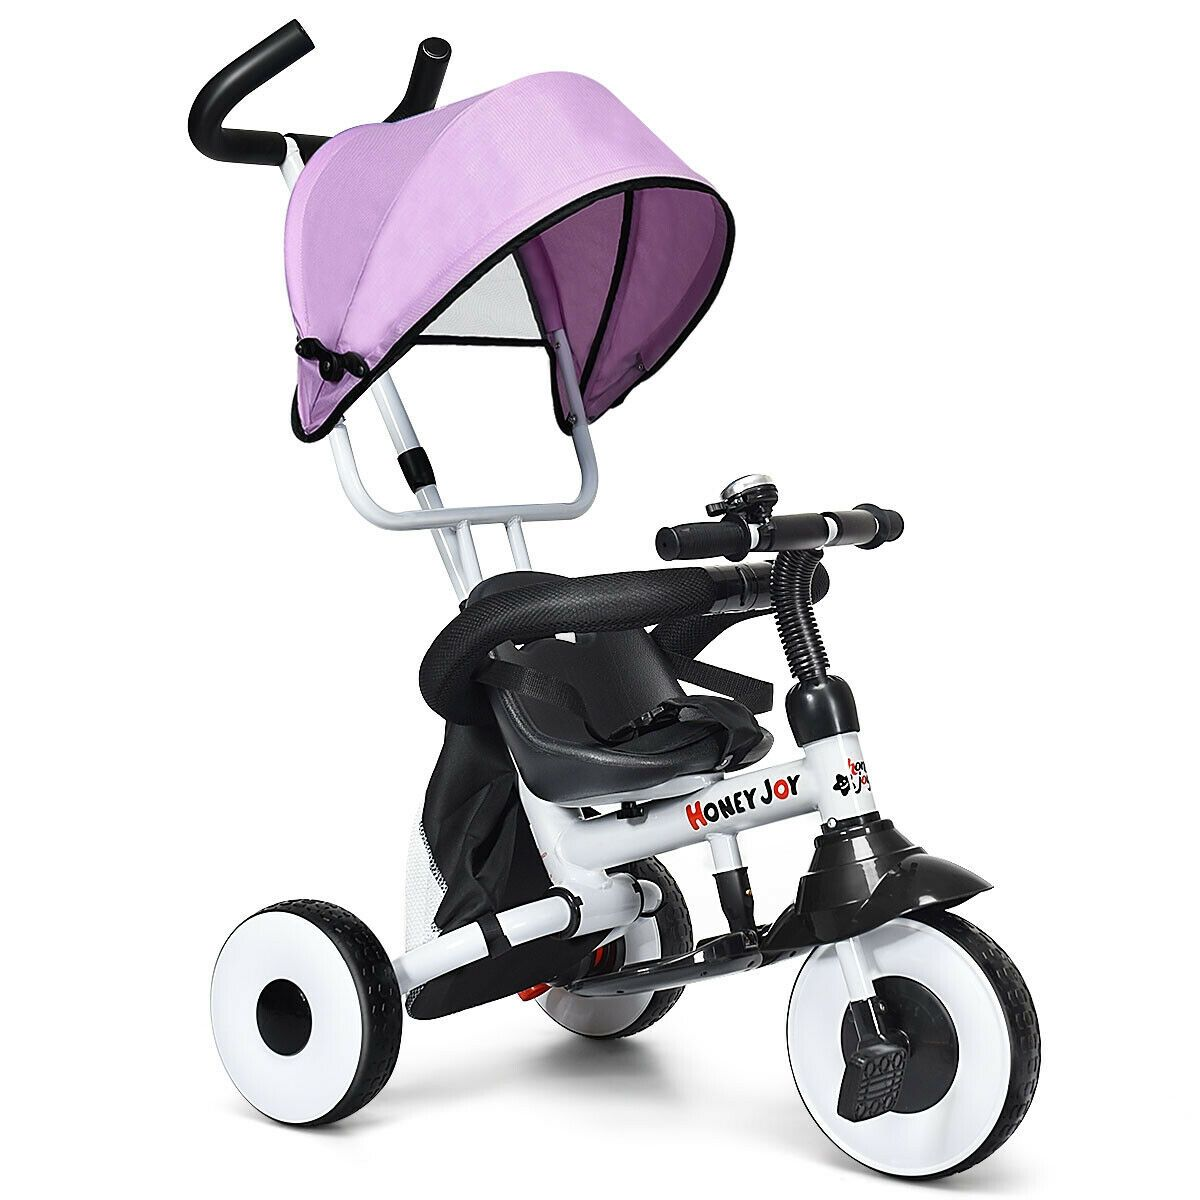 4in1 Kids Baby Stroller Tricycle Detachable Learning Toy